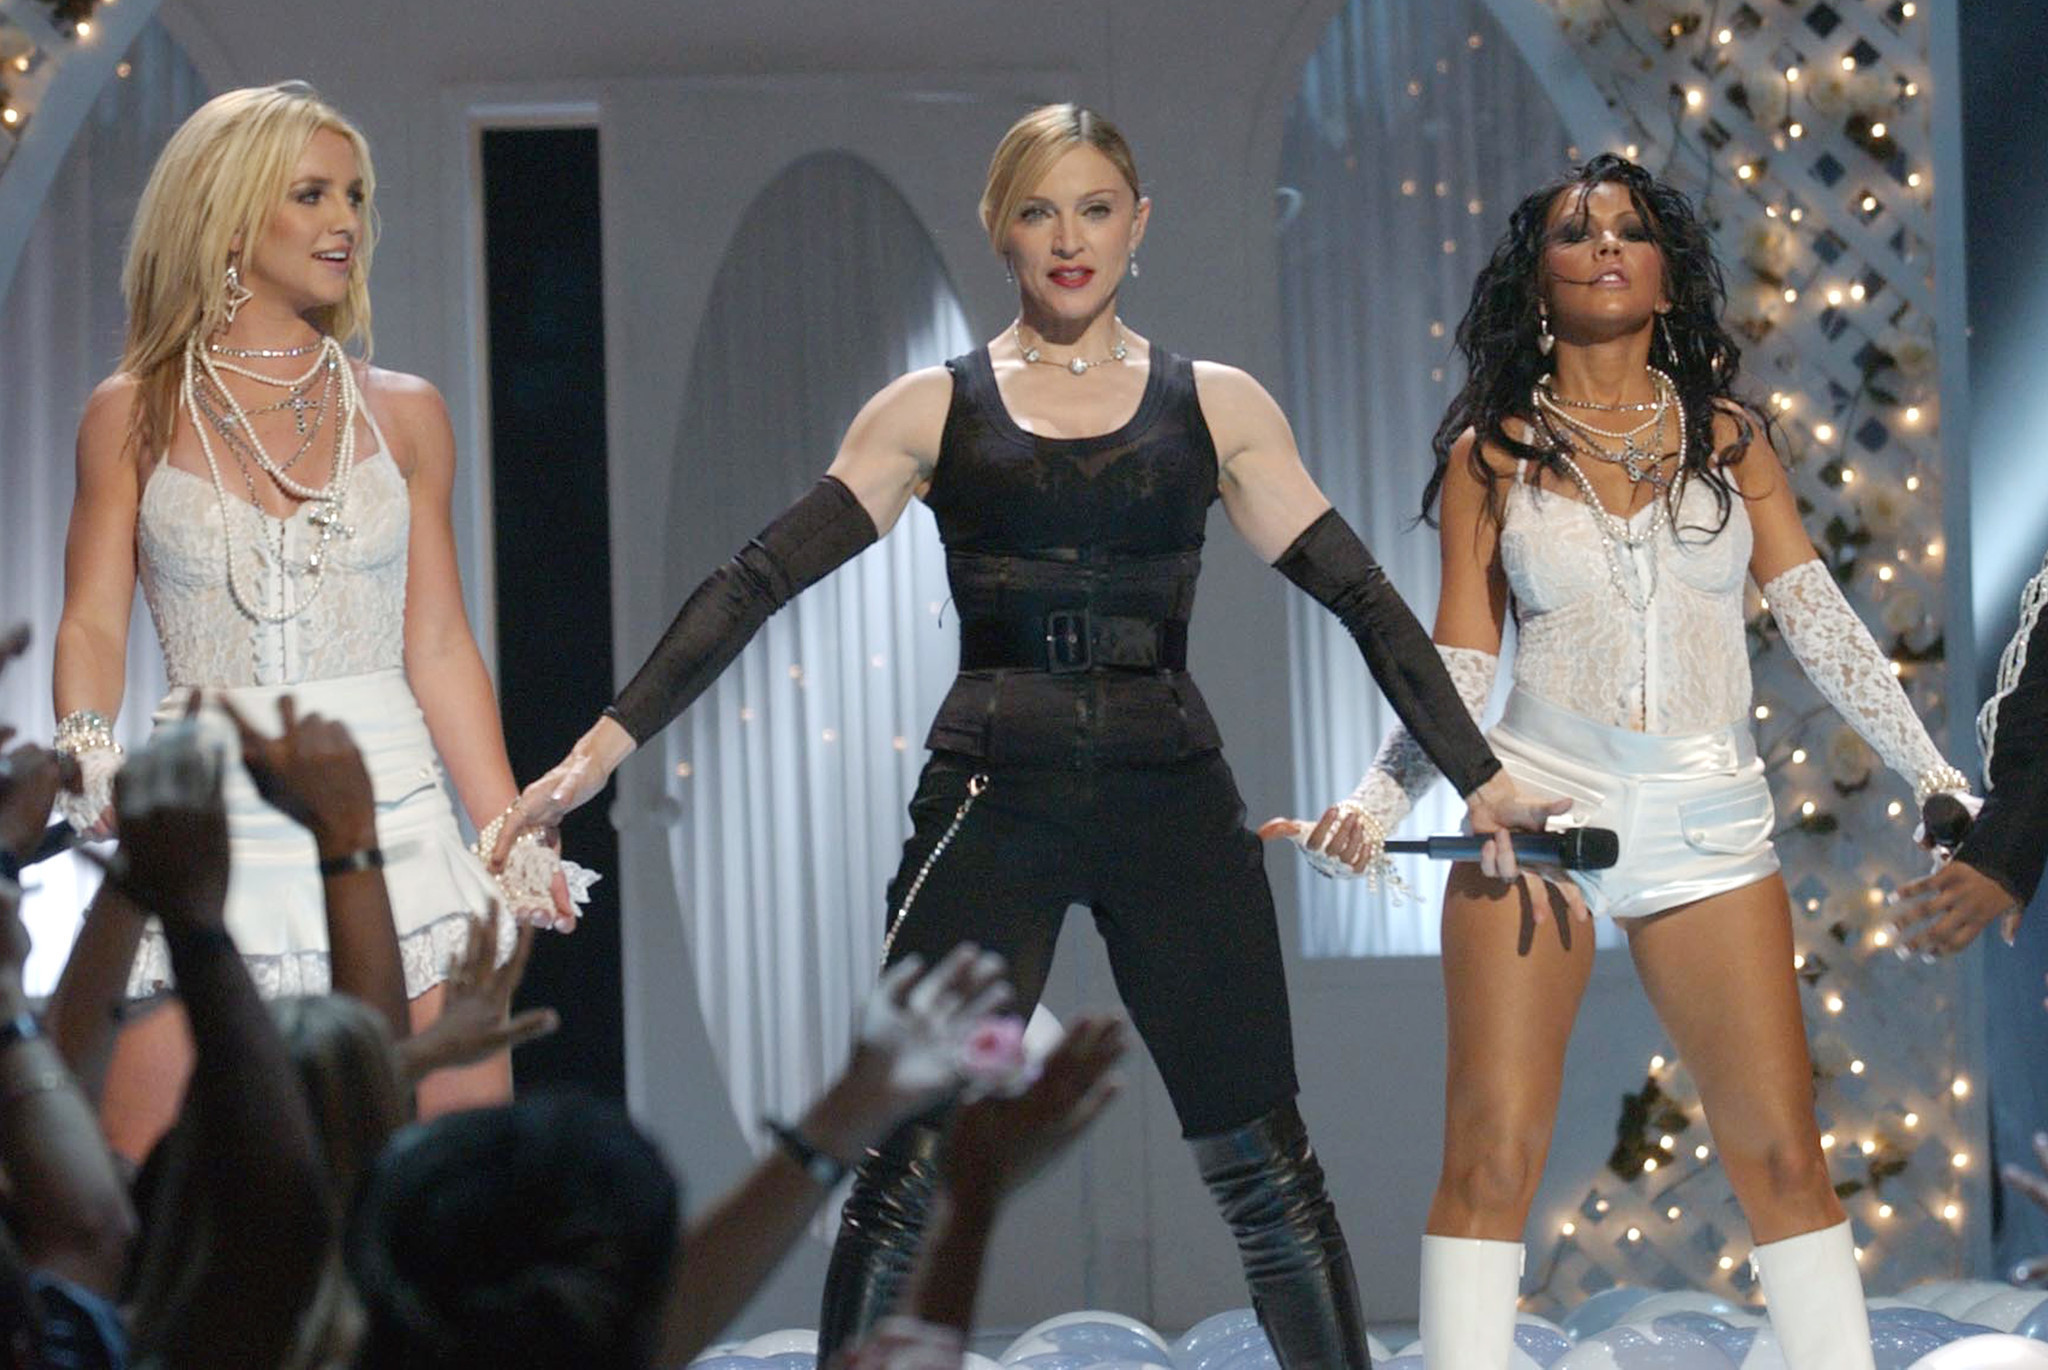 britney spears last appearance at vmas with madonna